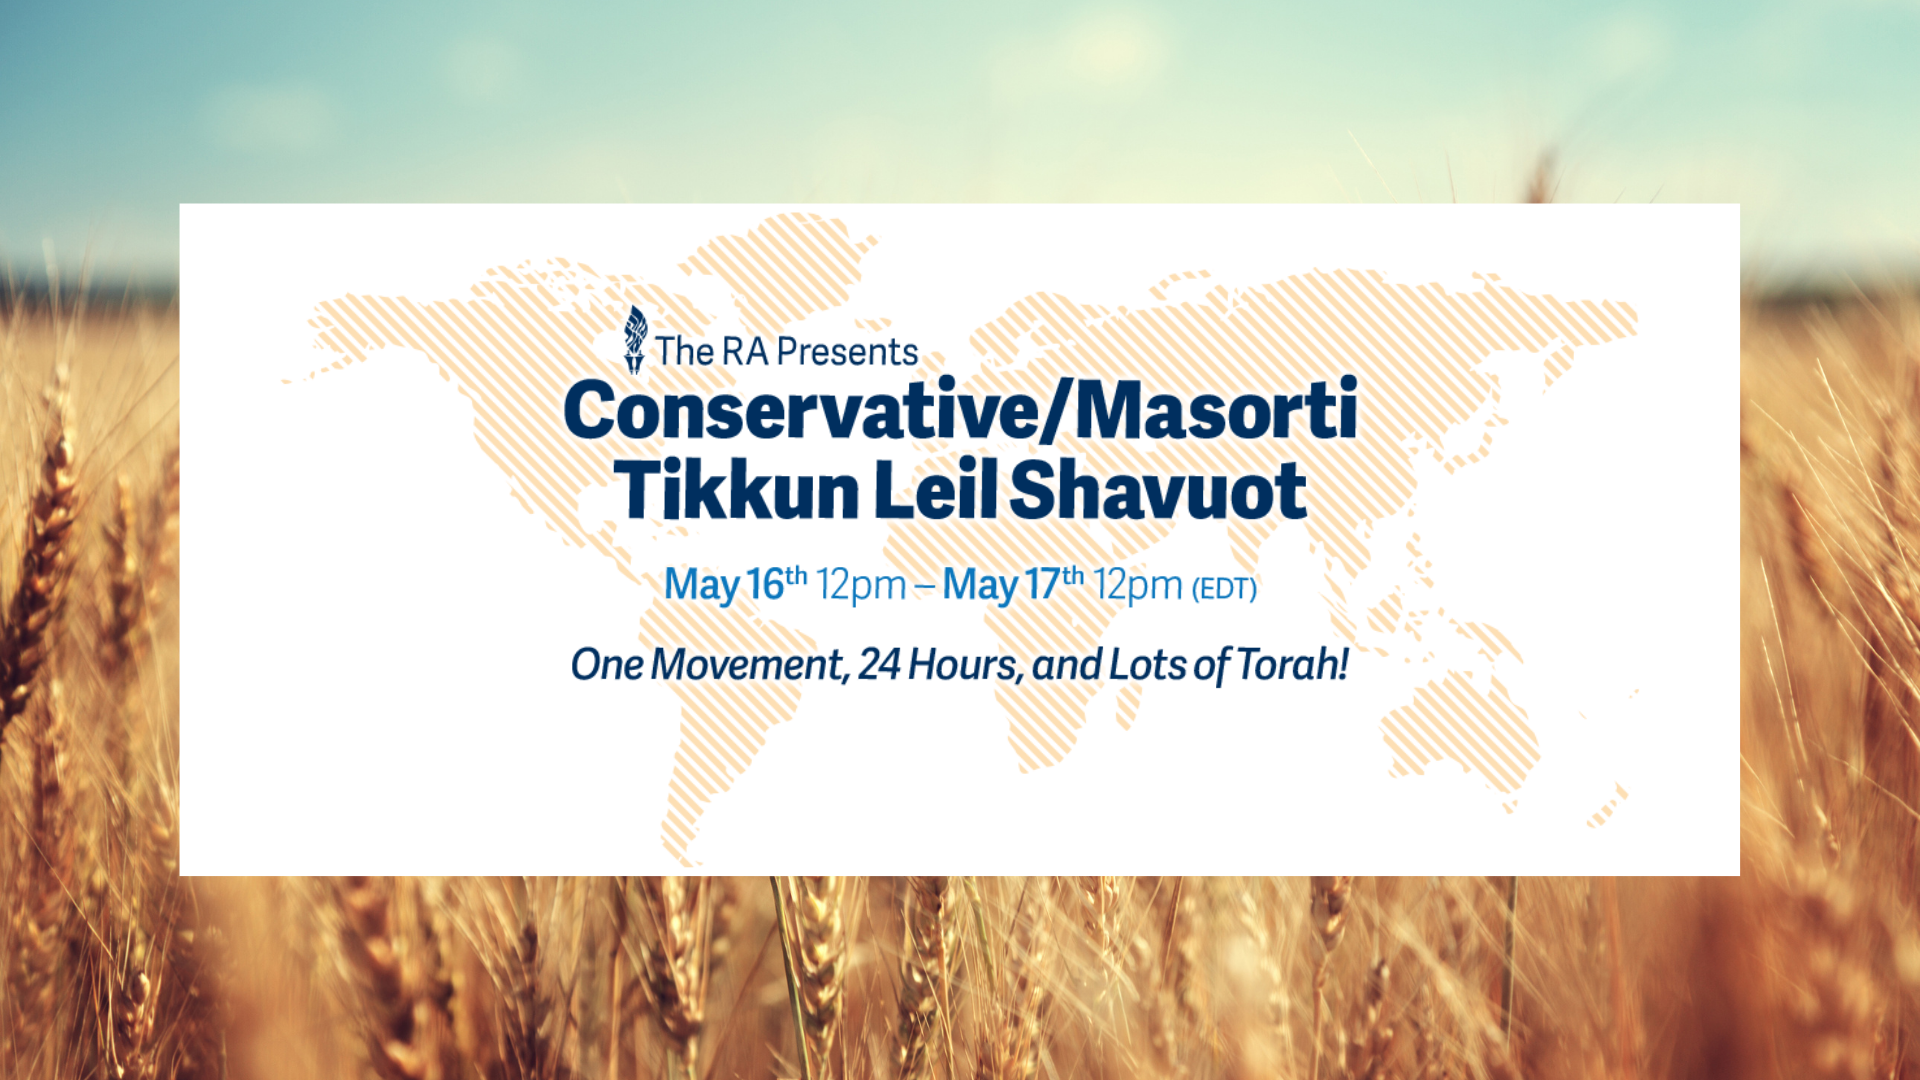 """<a href=""""https://www.rabbinicalassembly.org/civicrm/event/register?id=1349&reset=1""""                                     target=""""_blank"""">                                                                 <span class=""""slider_title"""">                                     Tikkun Leil Shavuot 5781                                </span>                                                                 </a>                                                                                                                                                                                       <span class=""""slider_description"""">We are excited to announce our second livestreamed Tikkun Leil Shavuot, a Conservative/Masorti global event from May 16 at 12:00 PM – May 17 at 12:00 PM EDT</span>                                                                                     <a href=""""https://www.rabbinicalassembly.org/civicrm/event/register?id=1349&reset=1"""" class=""""slider_link""""                             target=""""_blank"""">                             Click her for Registration                            </a>"""